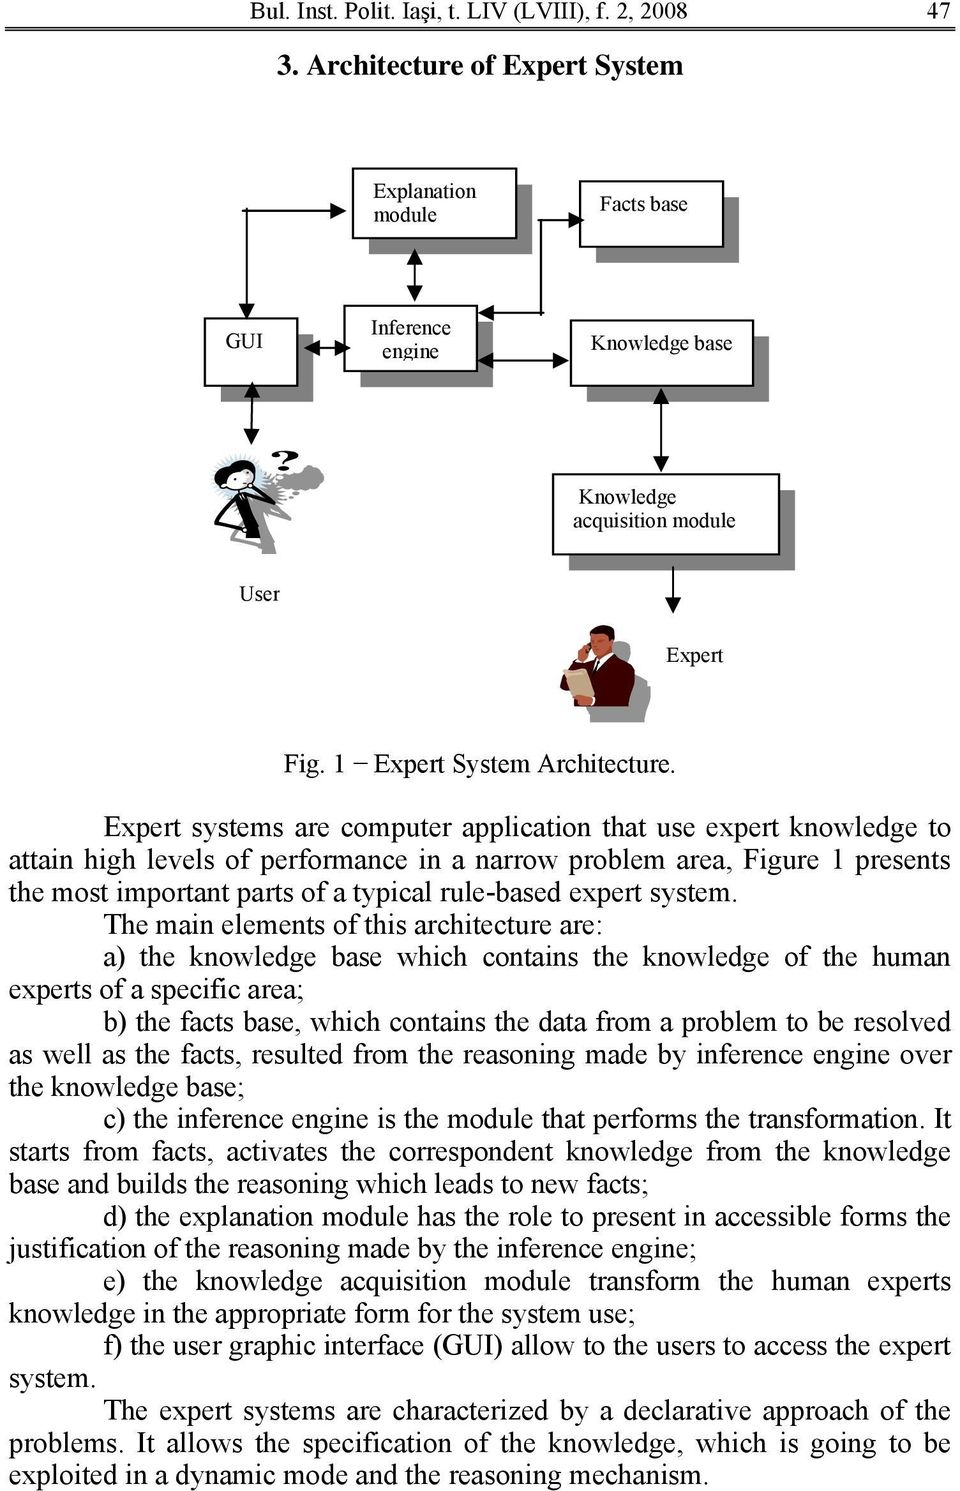 Expert systems are computer application that use expert knowledge to attain high levels of performance in a narrow problem area, Figure 1 presents the most important parts of a typical rule-based